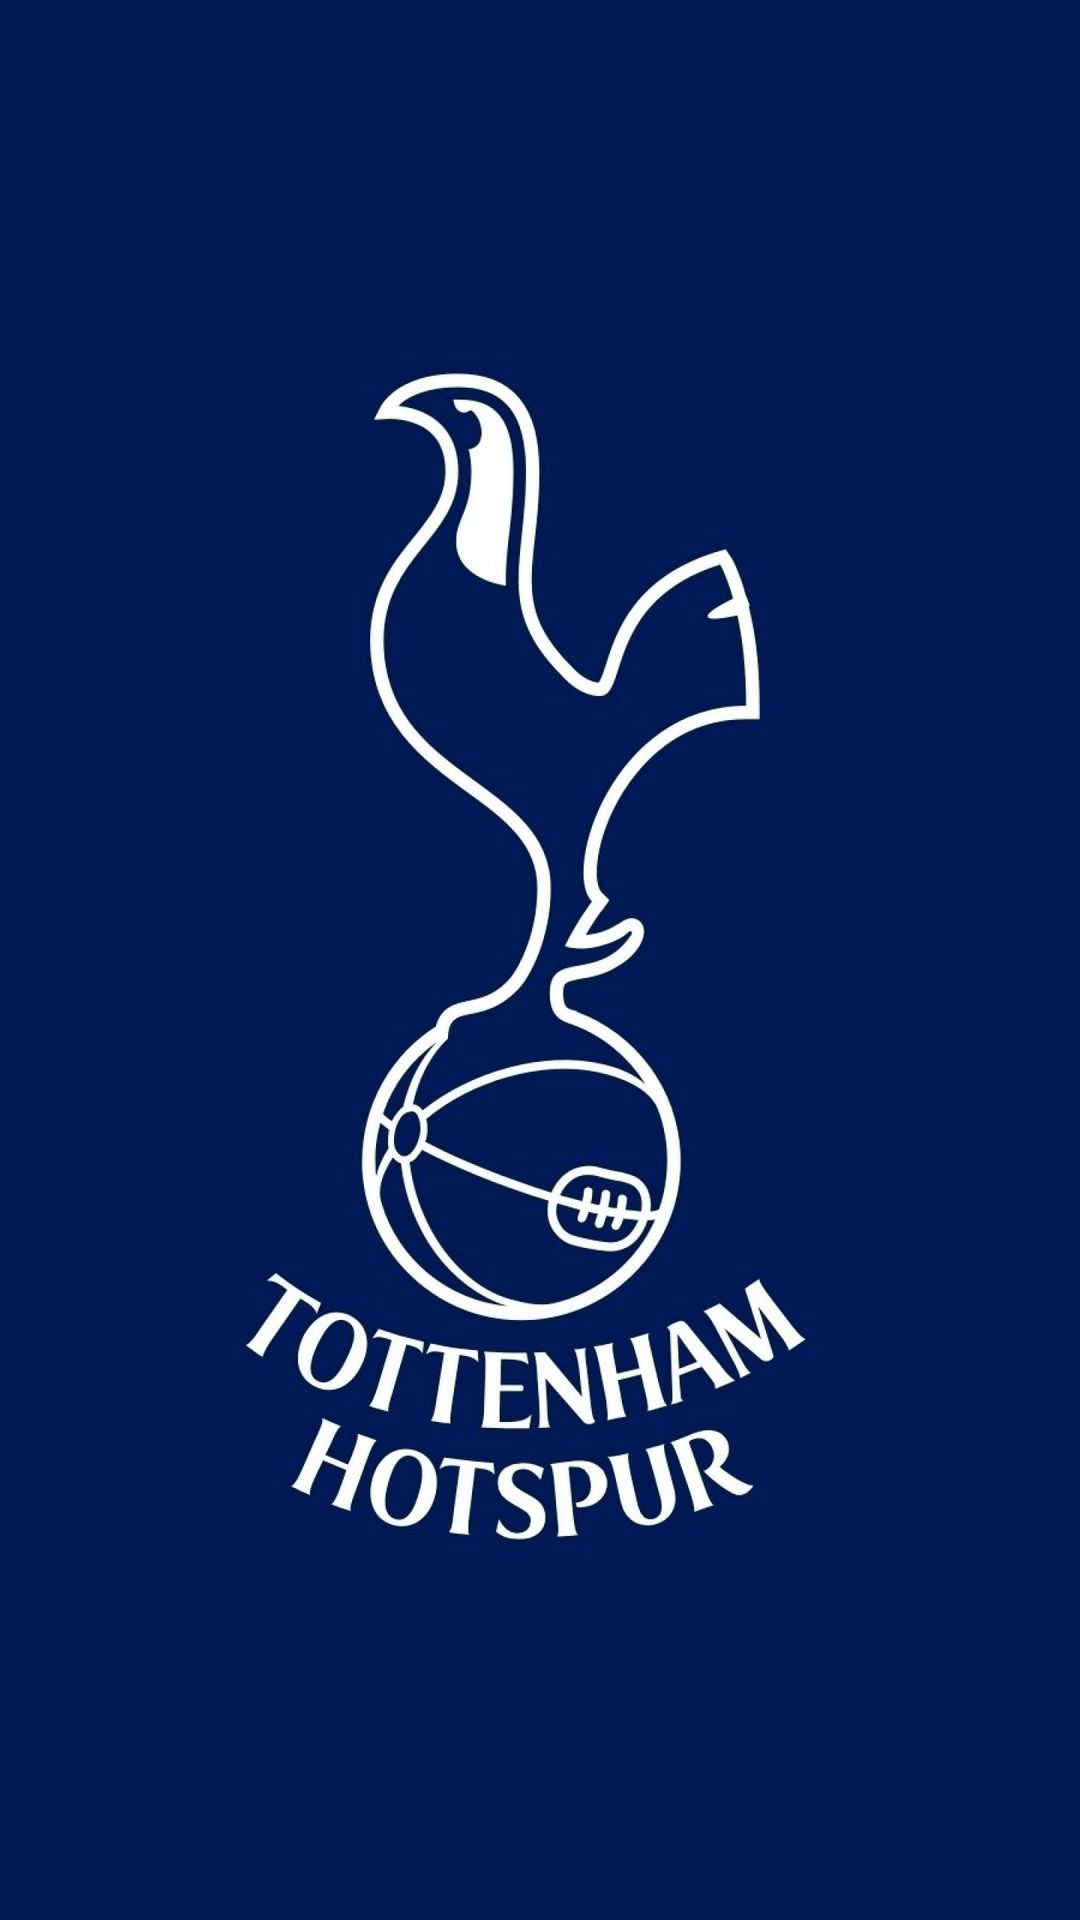 Iphone 7 Wallpaper Tottenham Hotspur Best Iphone Wallpaper Tottenham Hotspur Wallpaper Iphone Wallpapers Full Hd Tottenham Wallpaper